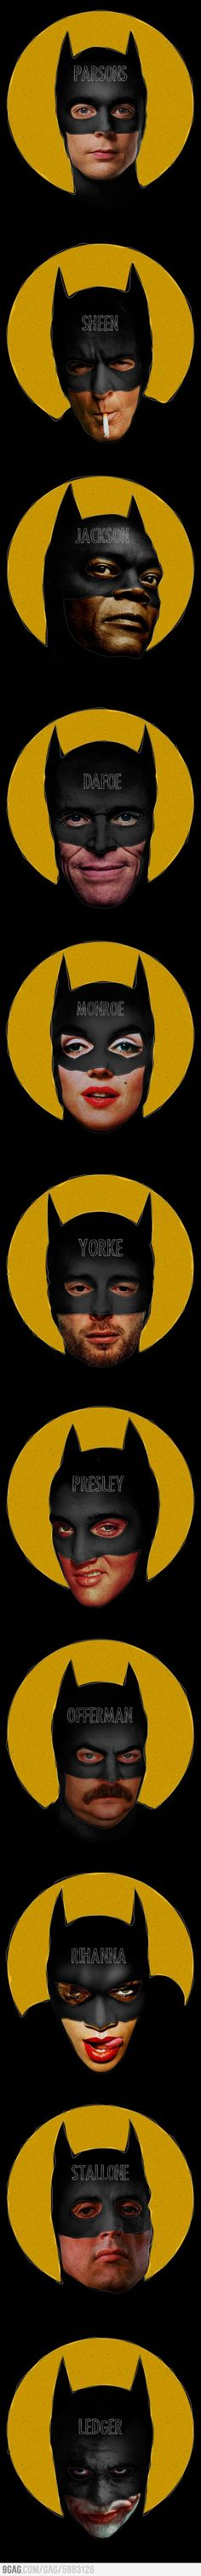 We are Batman - Can a hero really be anyone?!